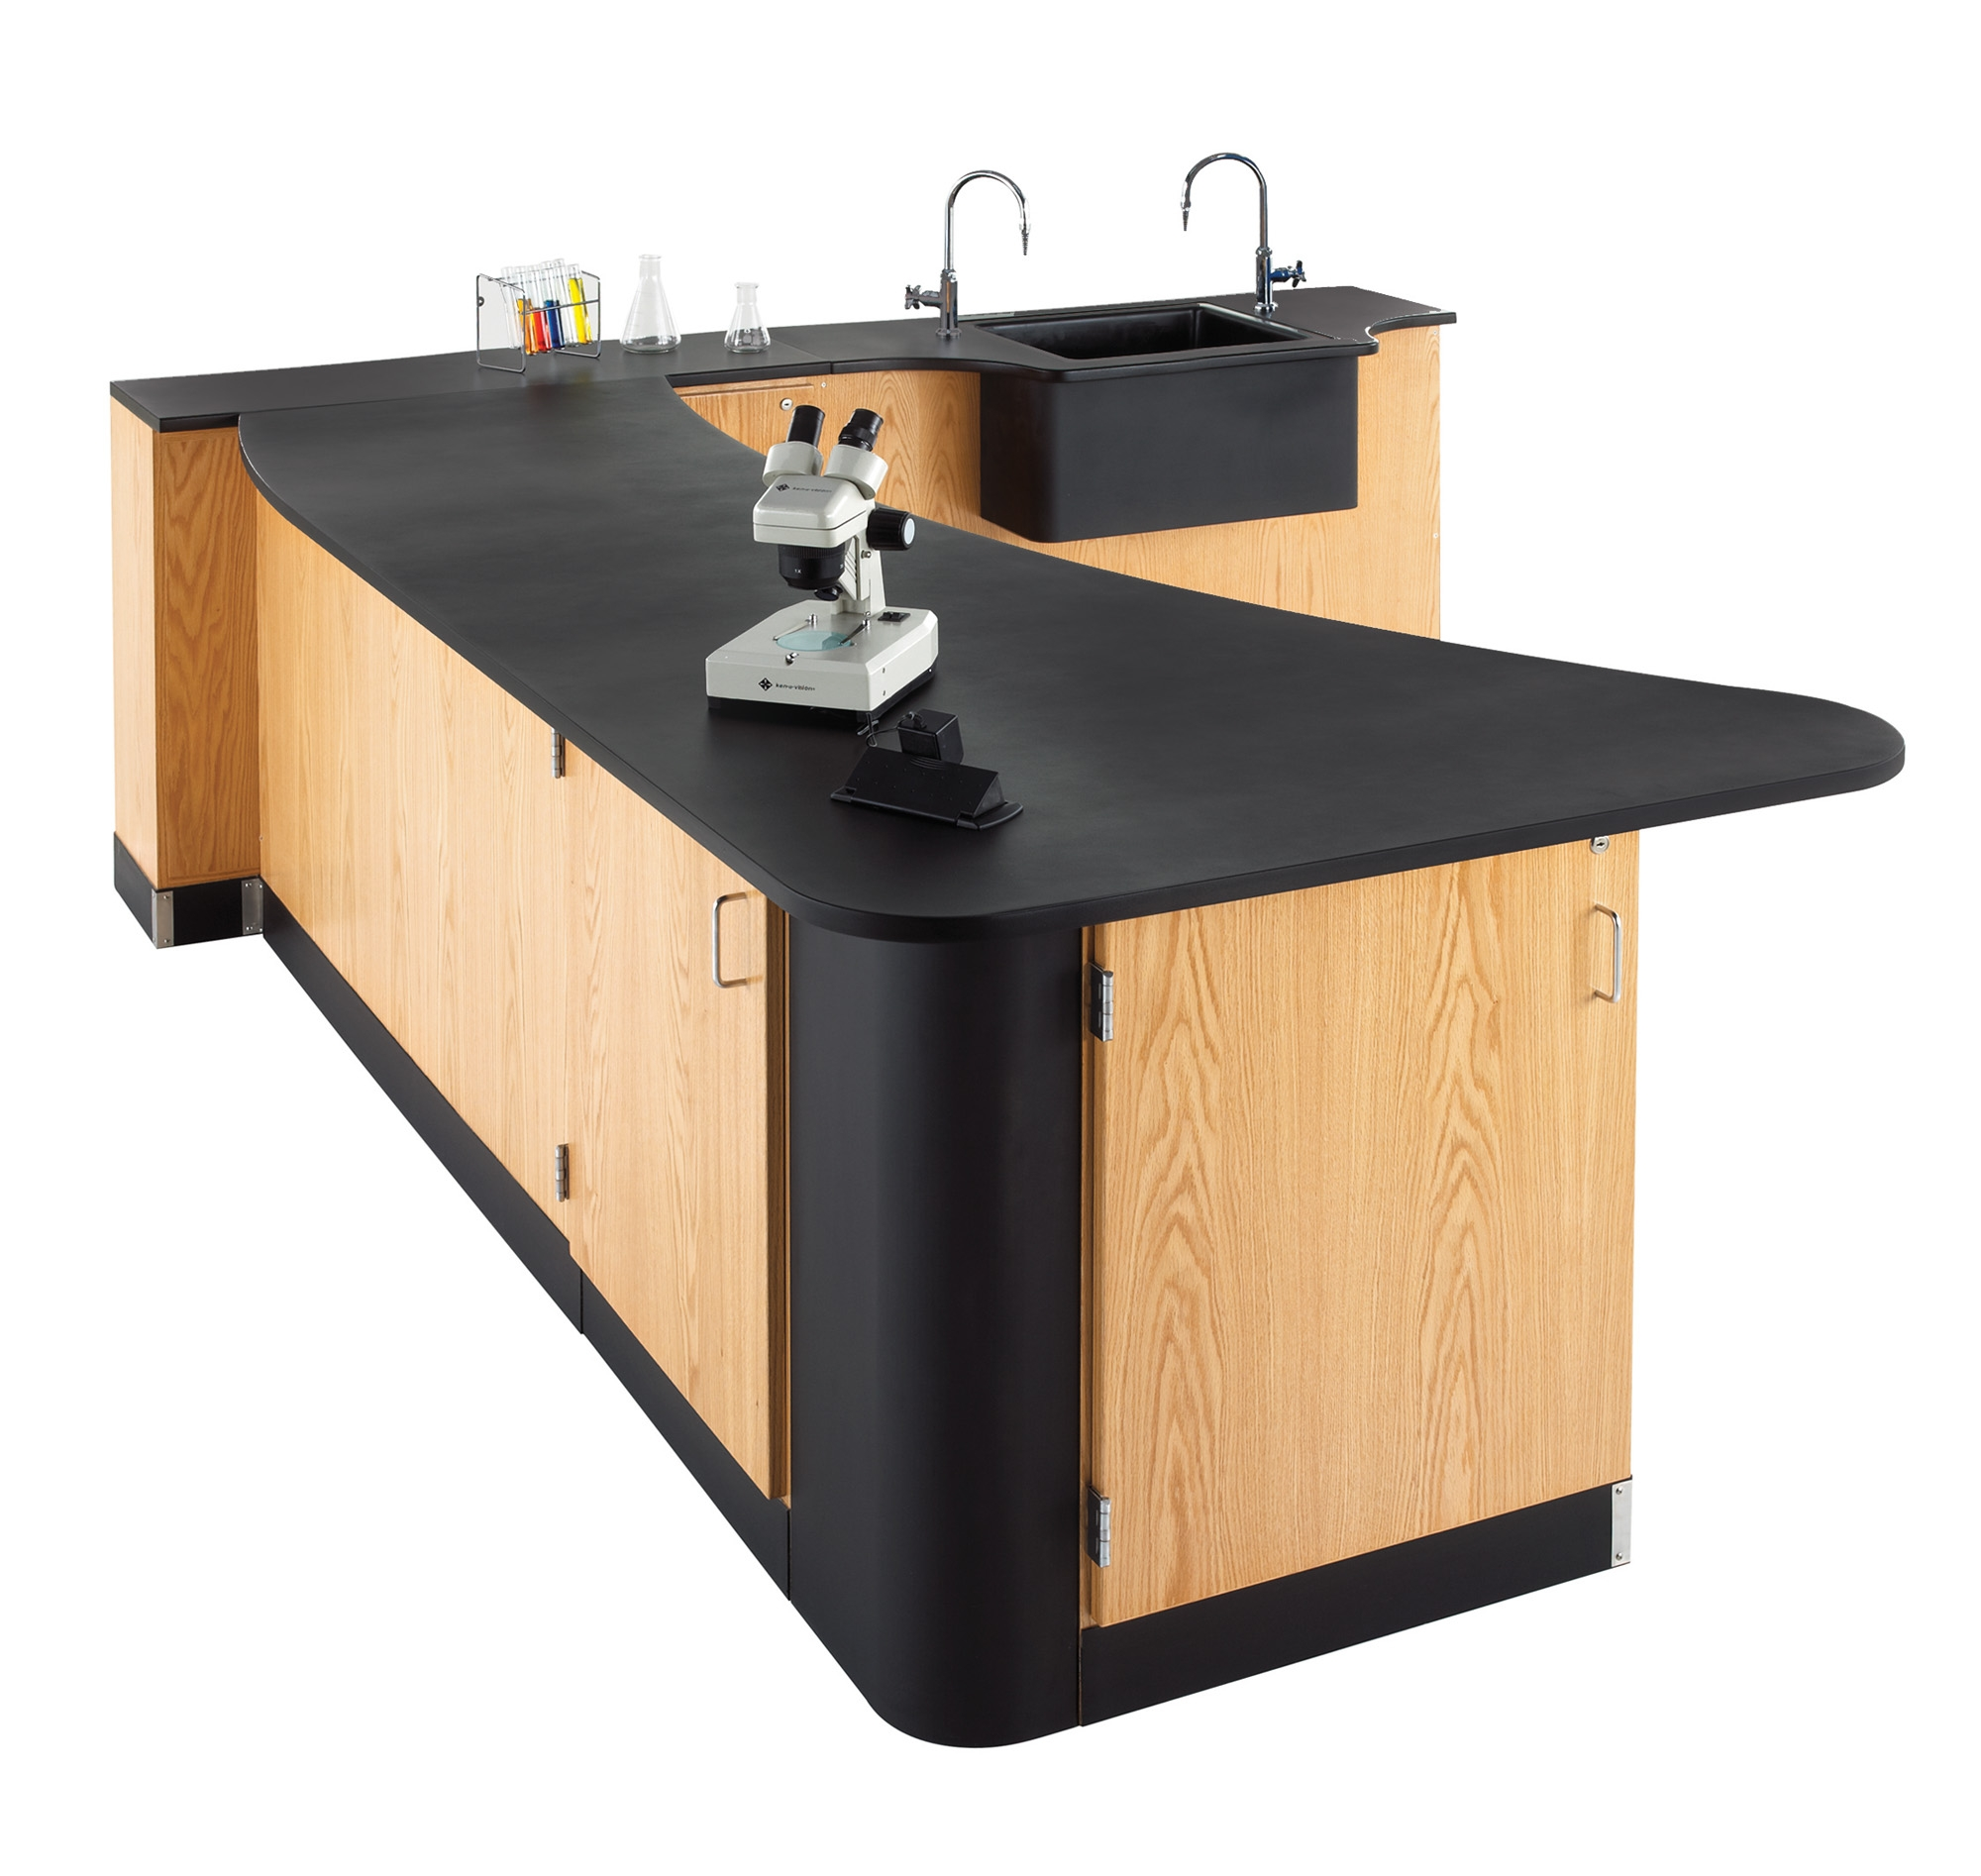 Diversified Woodcrafts Peninsula Workstation with Wall Sink